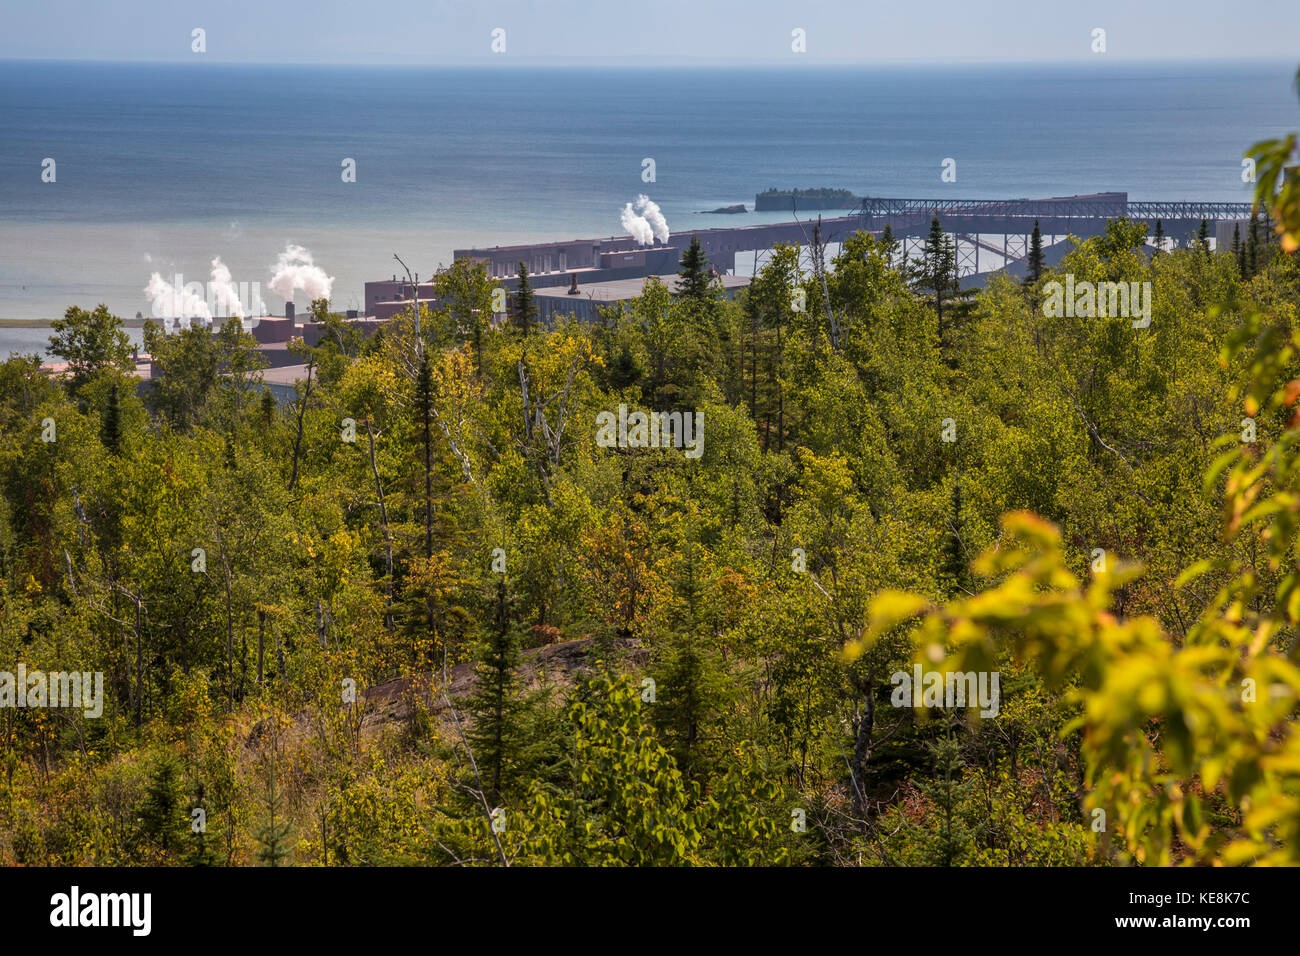 Silver Bay, Minnesota - Northshore Mining's taconite processing plant on the shore of Lake Superior. The plant - Stock Image